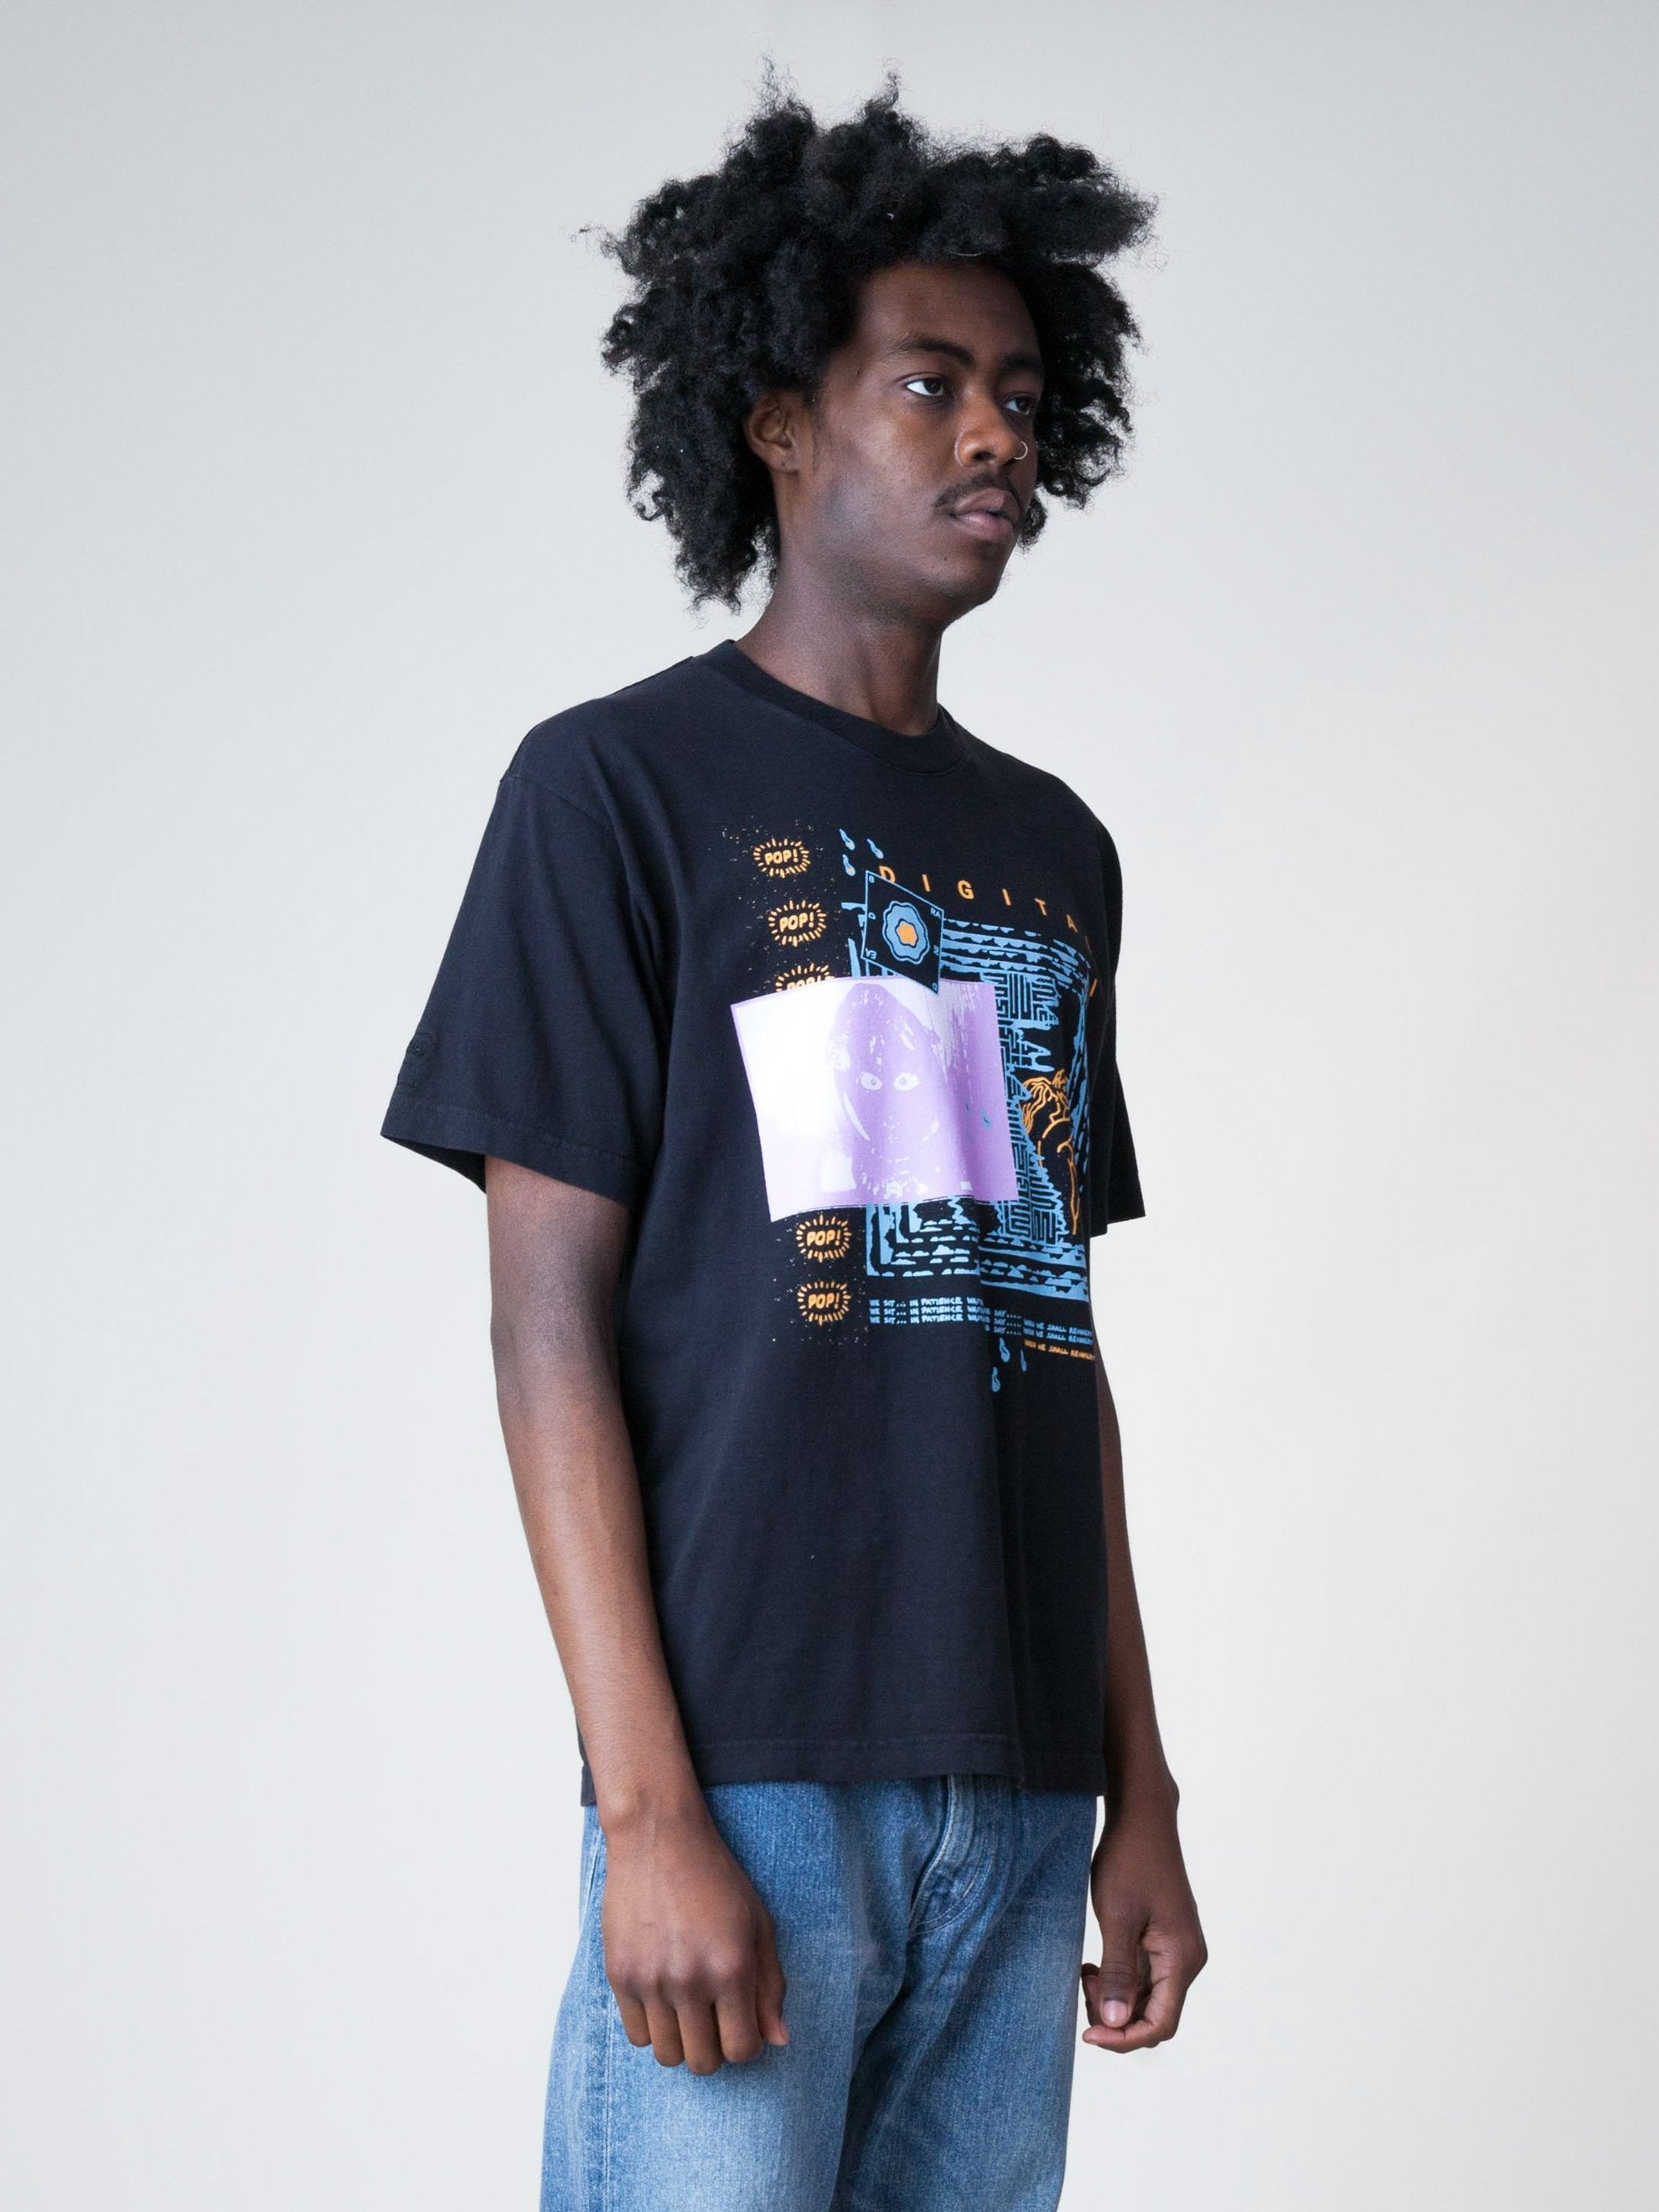 Digital Life S/S T-Shirt